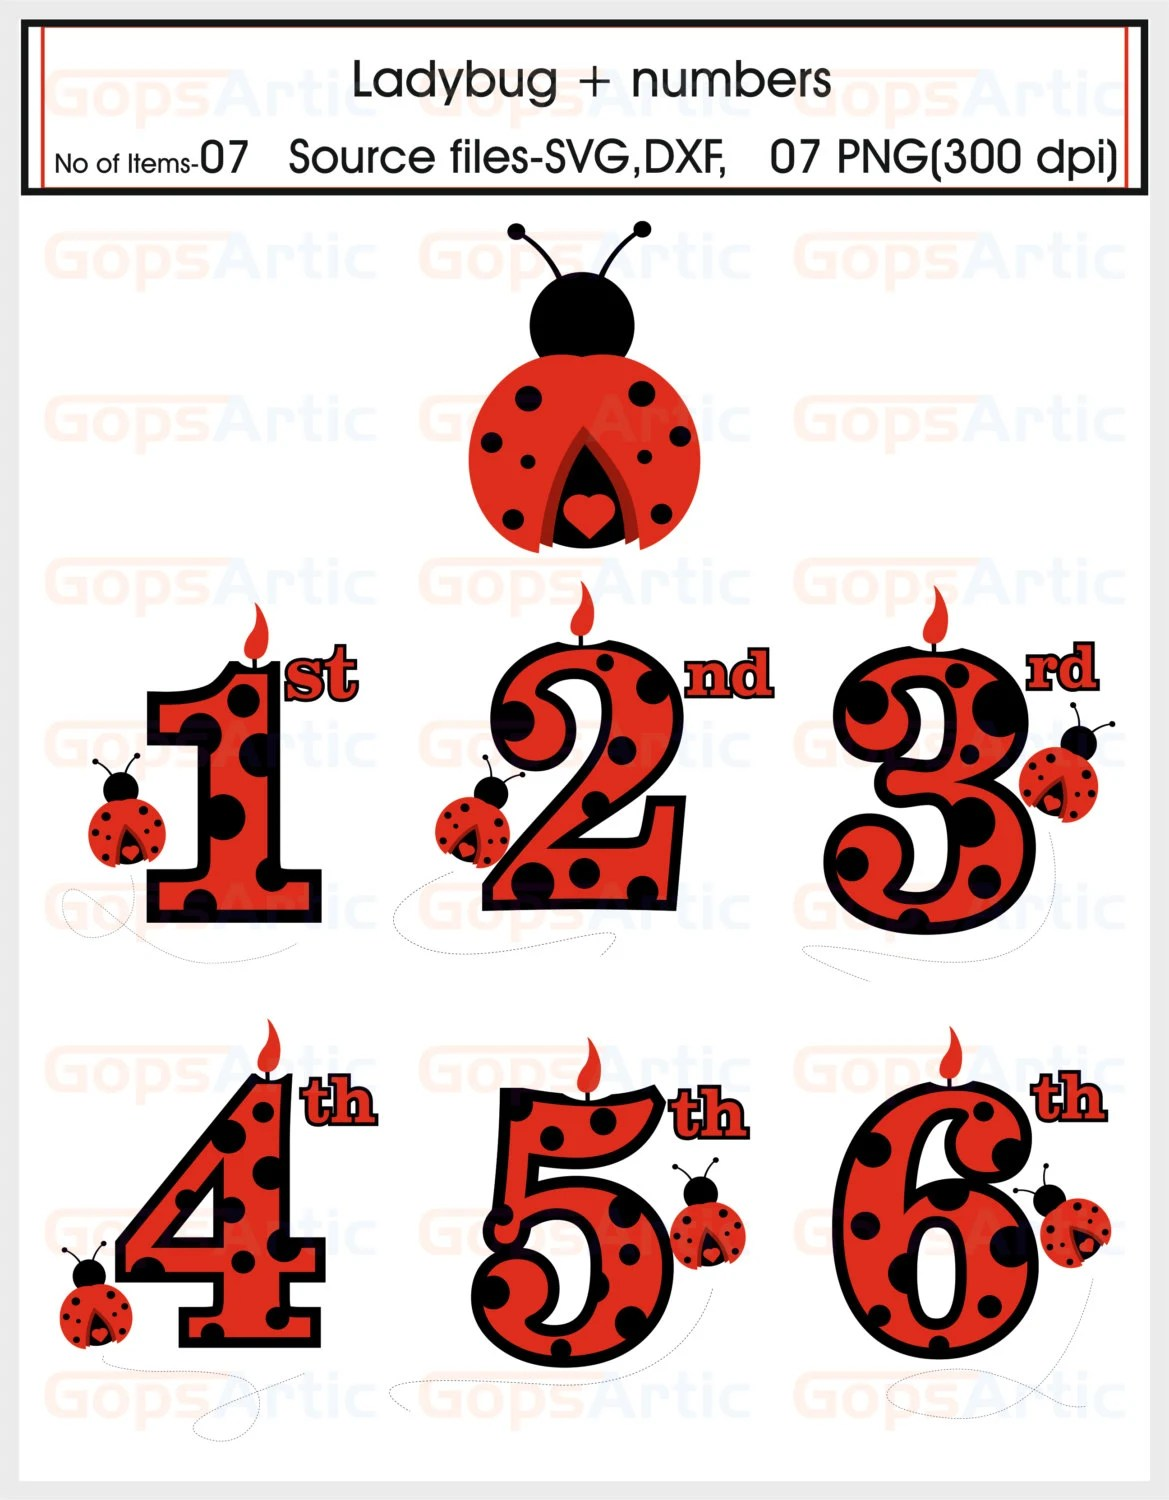 Ladybug Plus Numbers Svg Dxf Files From Gopsartic On